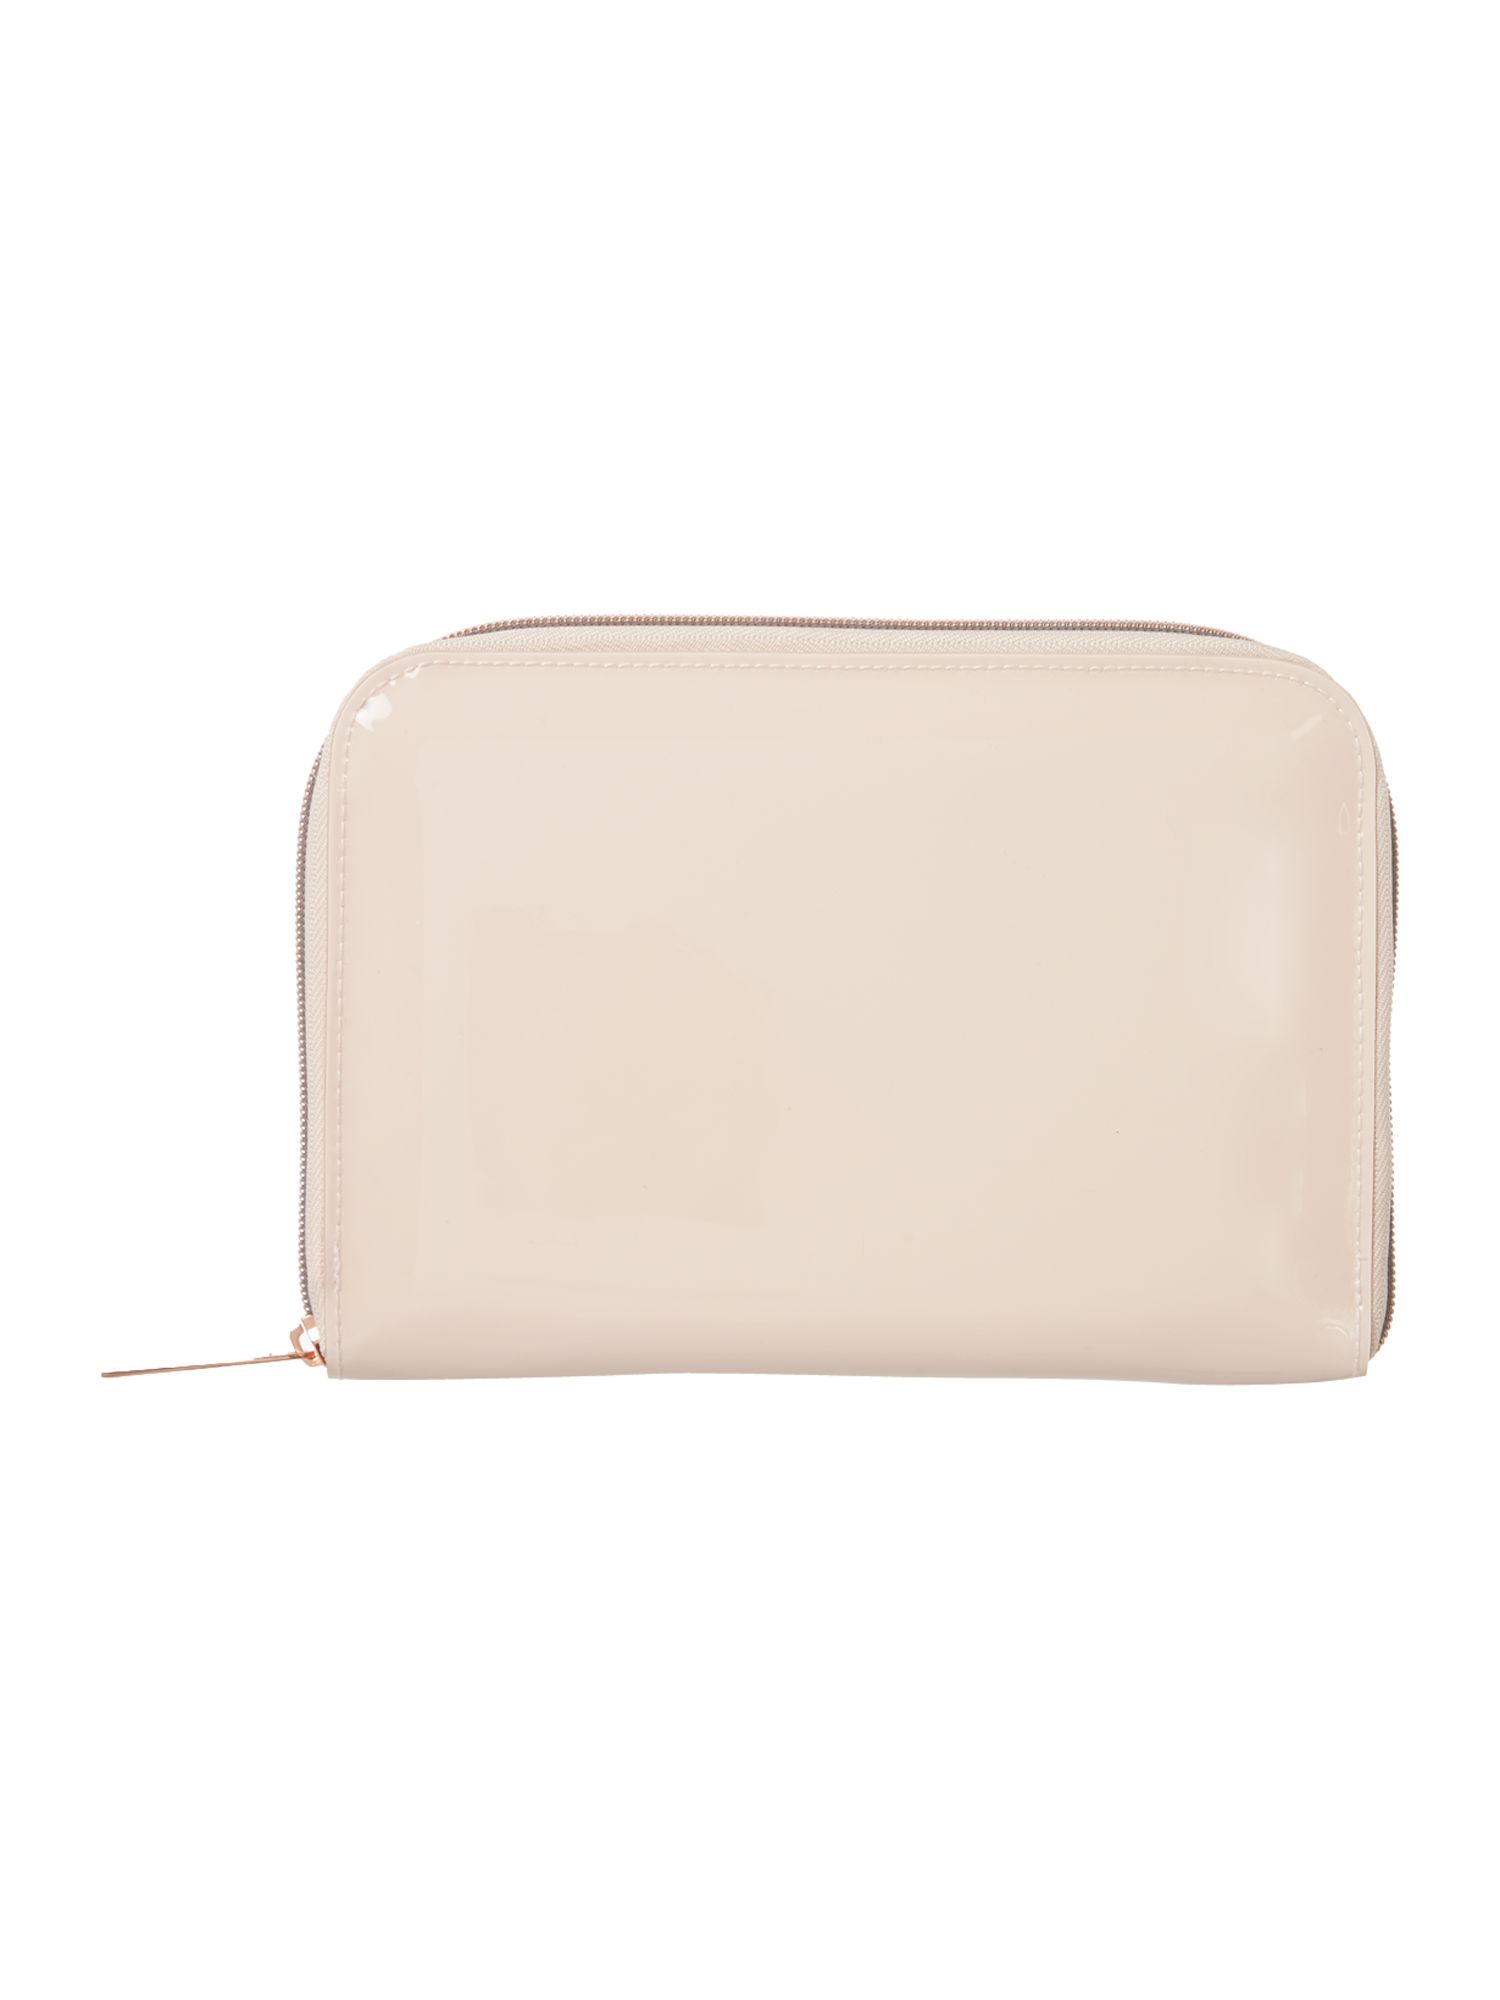 Small nude iPad case